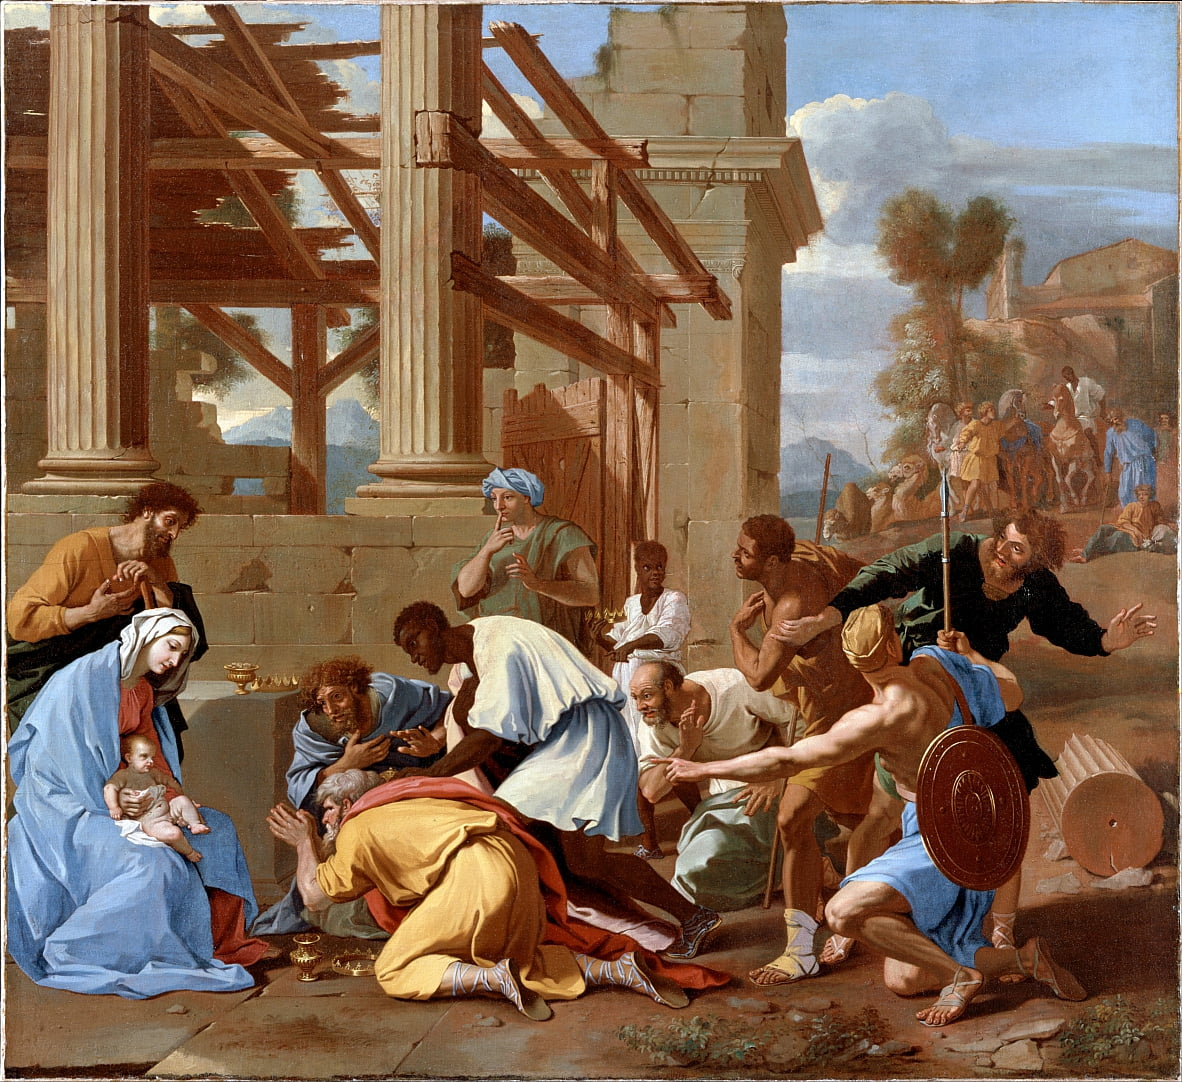 The Adoration of the Magi by Nicolas Poussin